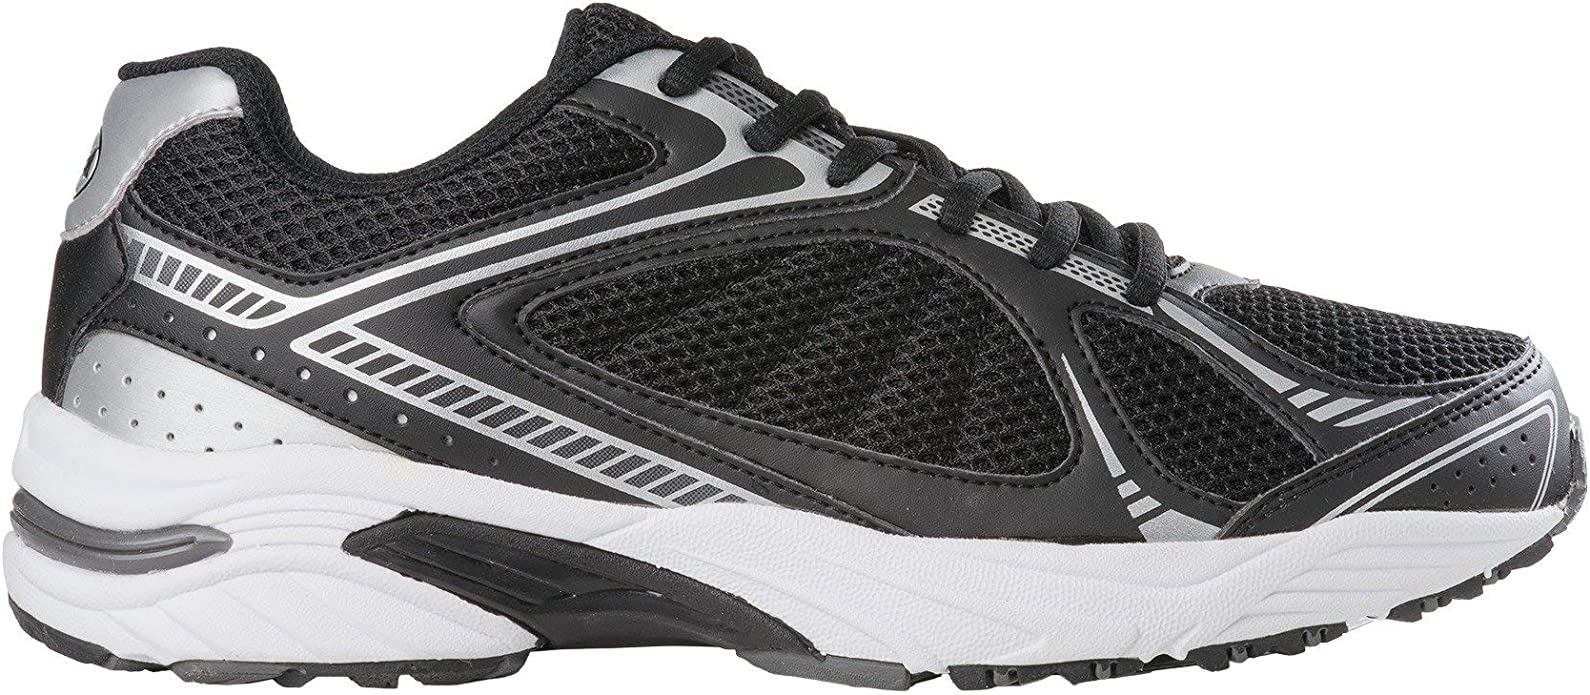 Scholl Deportivas New Sprinter Negro 35: Amazon.es: Zapatos y ...